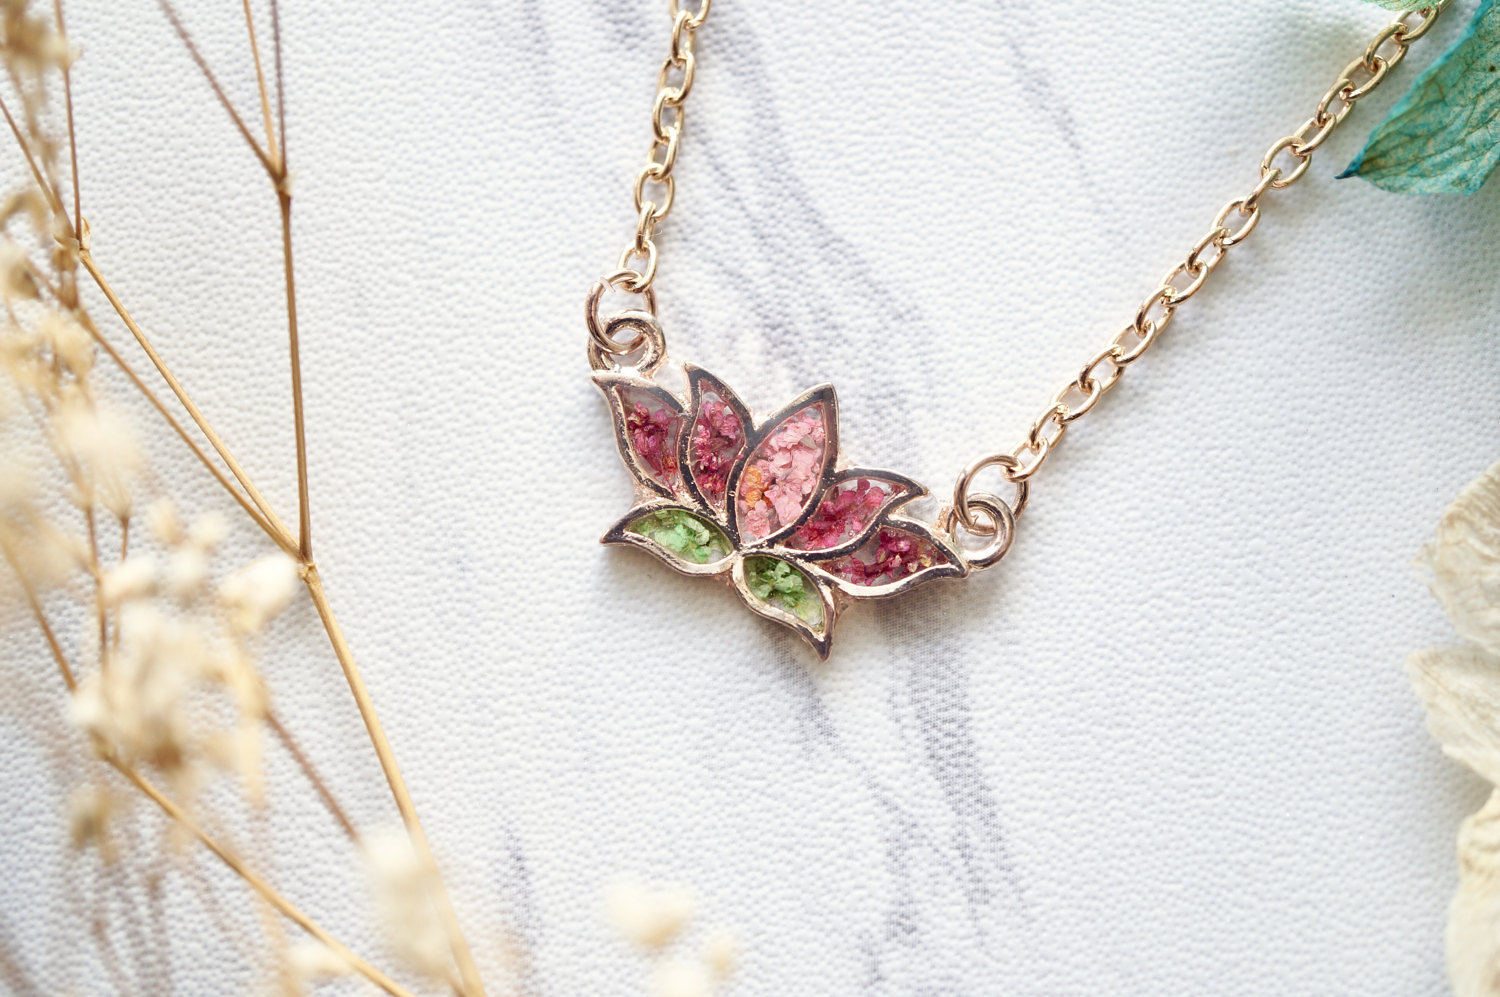 Real Pressed Flowers And Resin Necklace Rose Gold Lotus Flower In